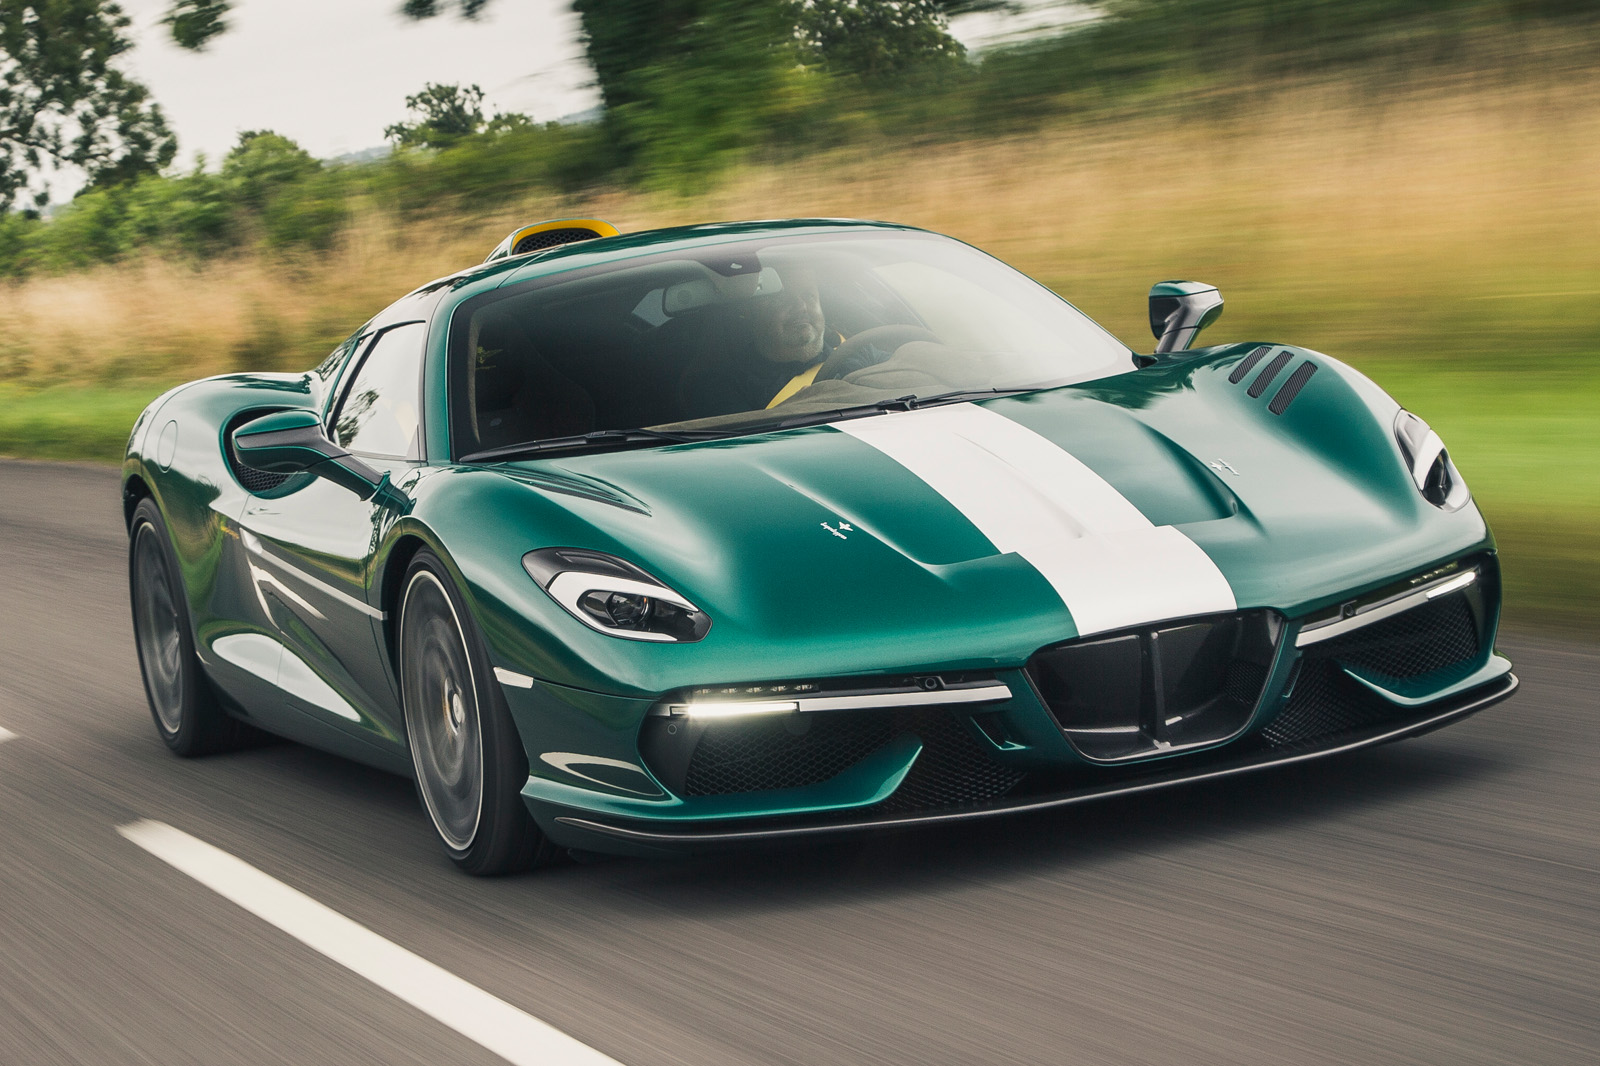 New Touring Arese RH95: Coachbuilt supercar driven in UK